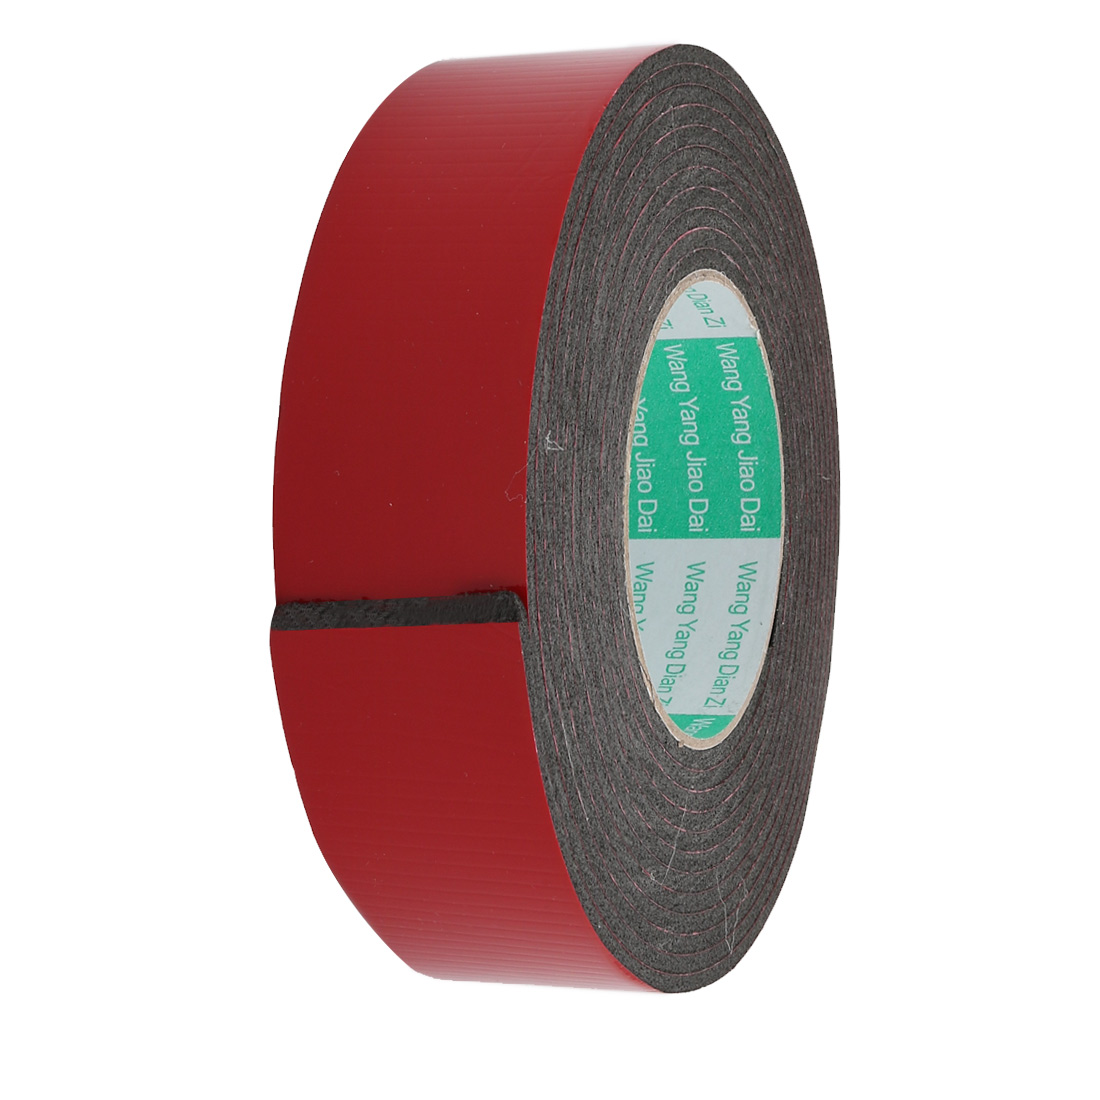 Unique Bargains Door Seal 50x3mm Dual-sided Adhesive Shockproof Sponge Foam Tape 4M Length